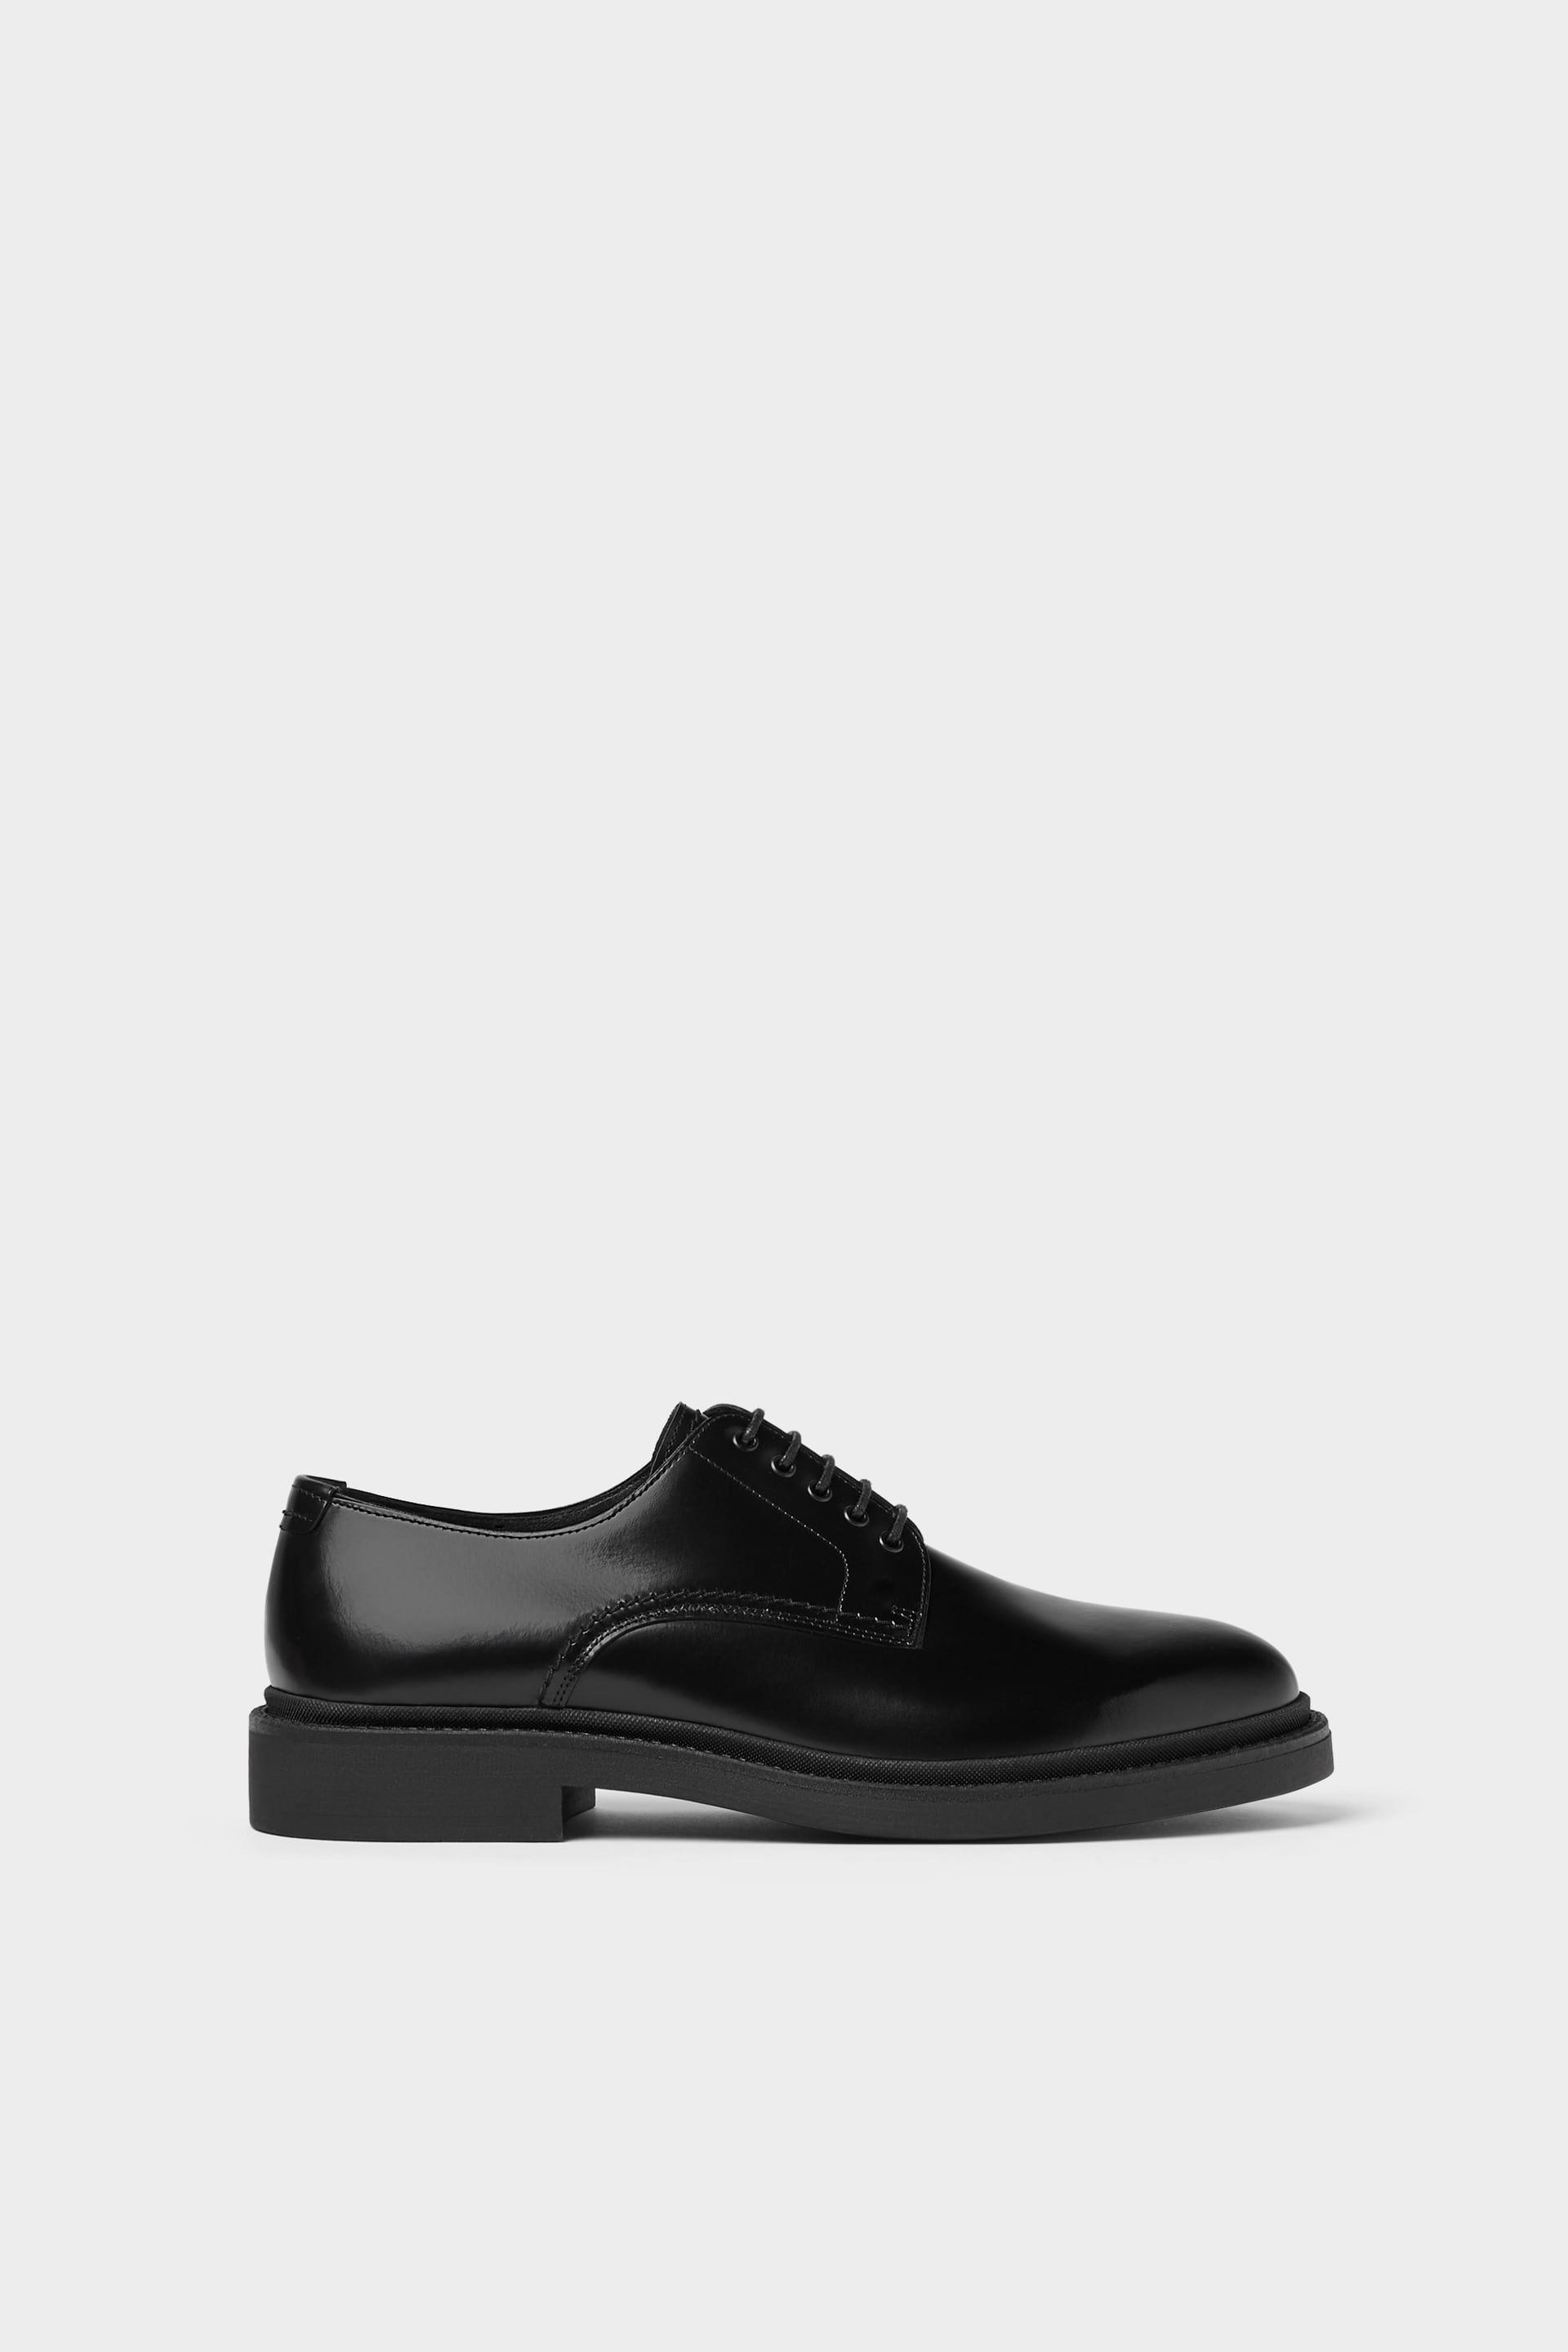 BLACK LEATHER SHOES WITH A GLOSSY FINISH